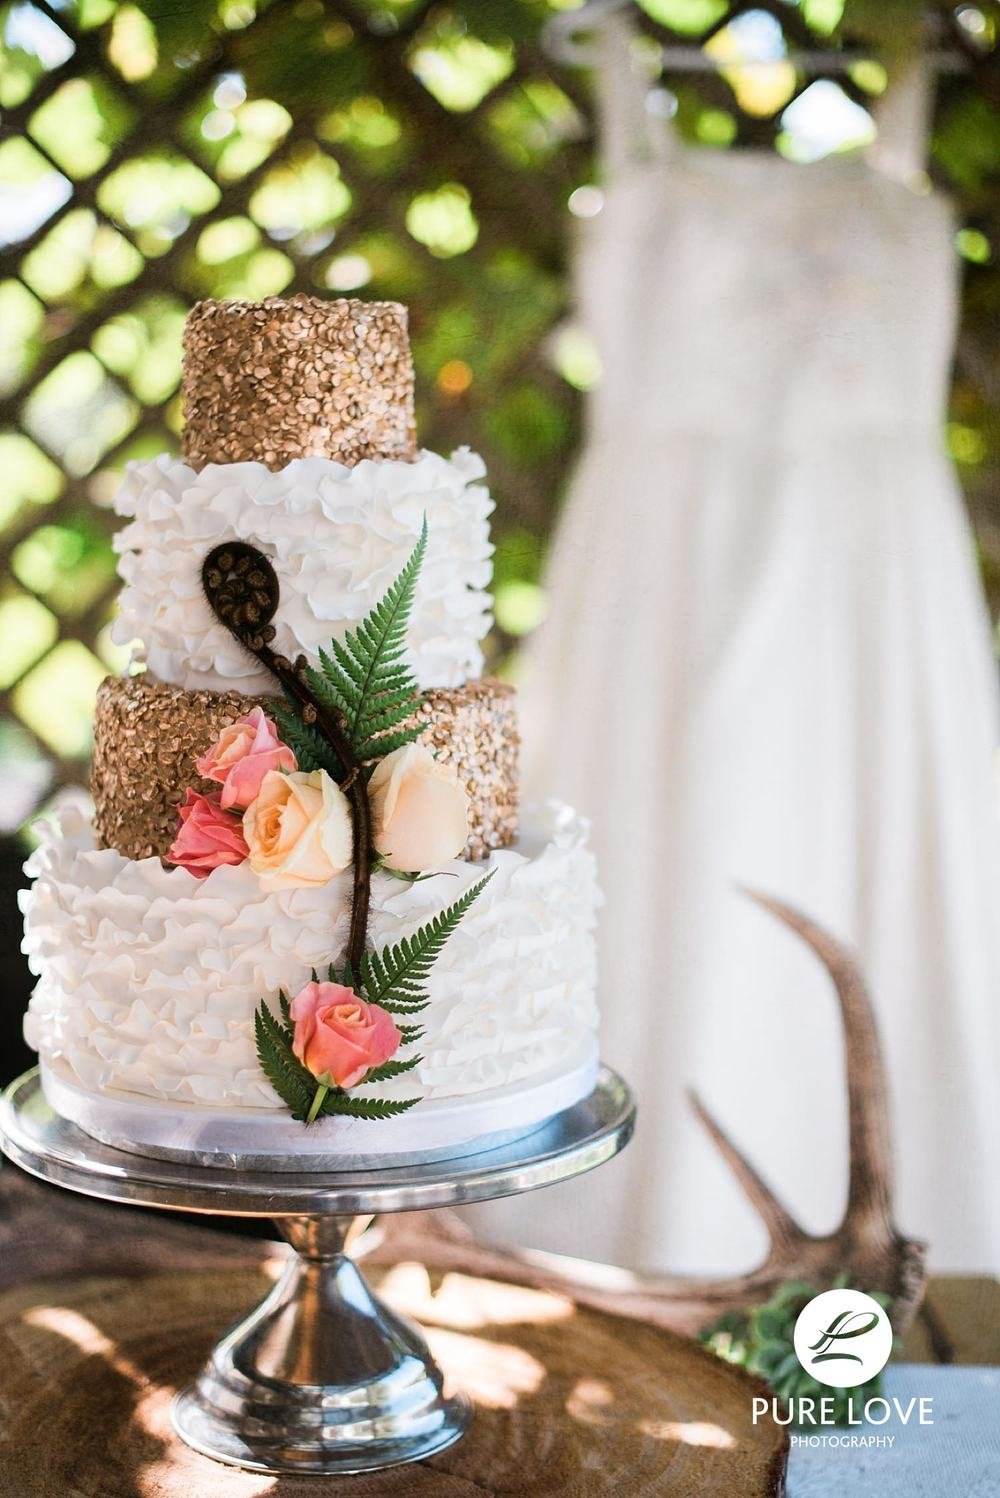 Gorgeous rustic wedding cake made by  Our Cake Company , Rotorua.